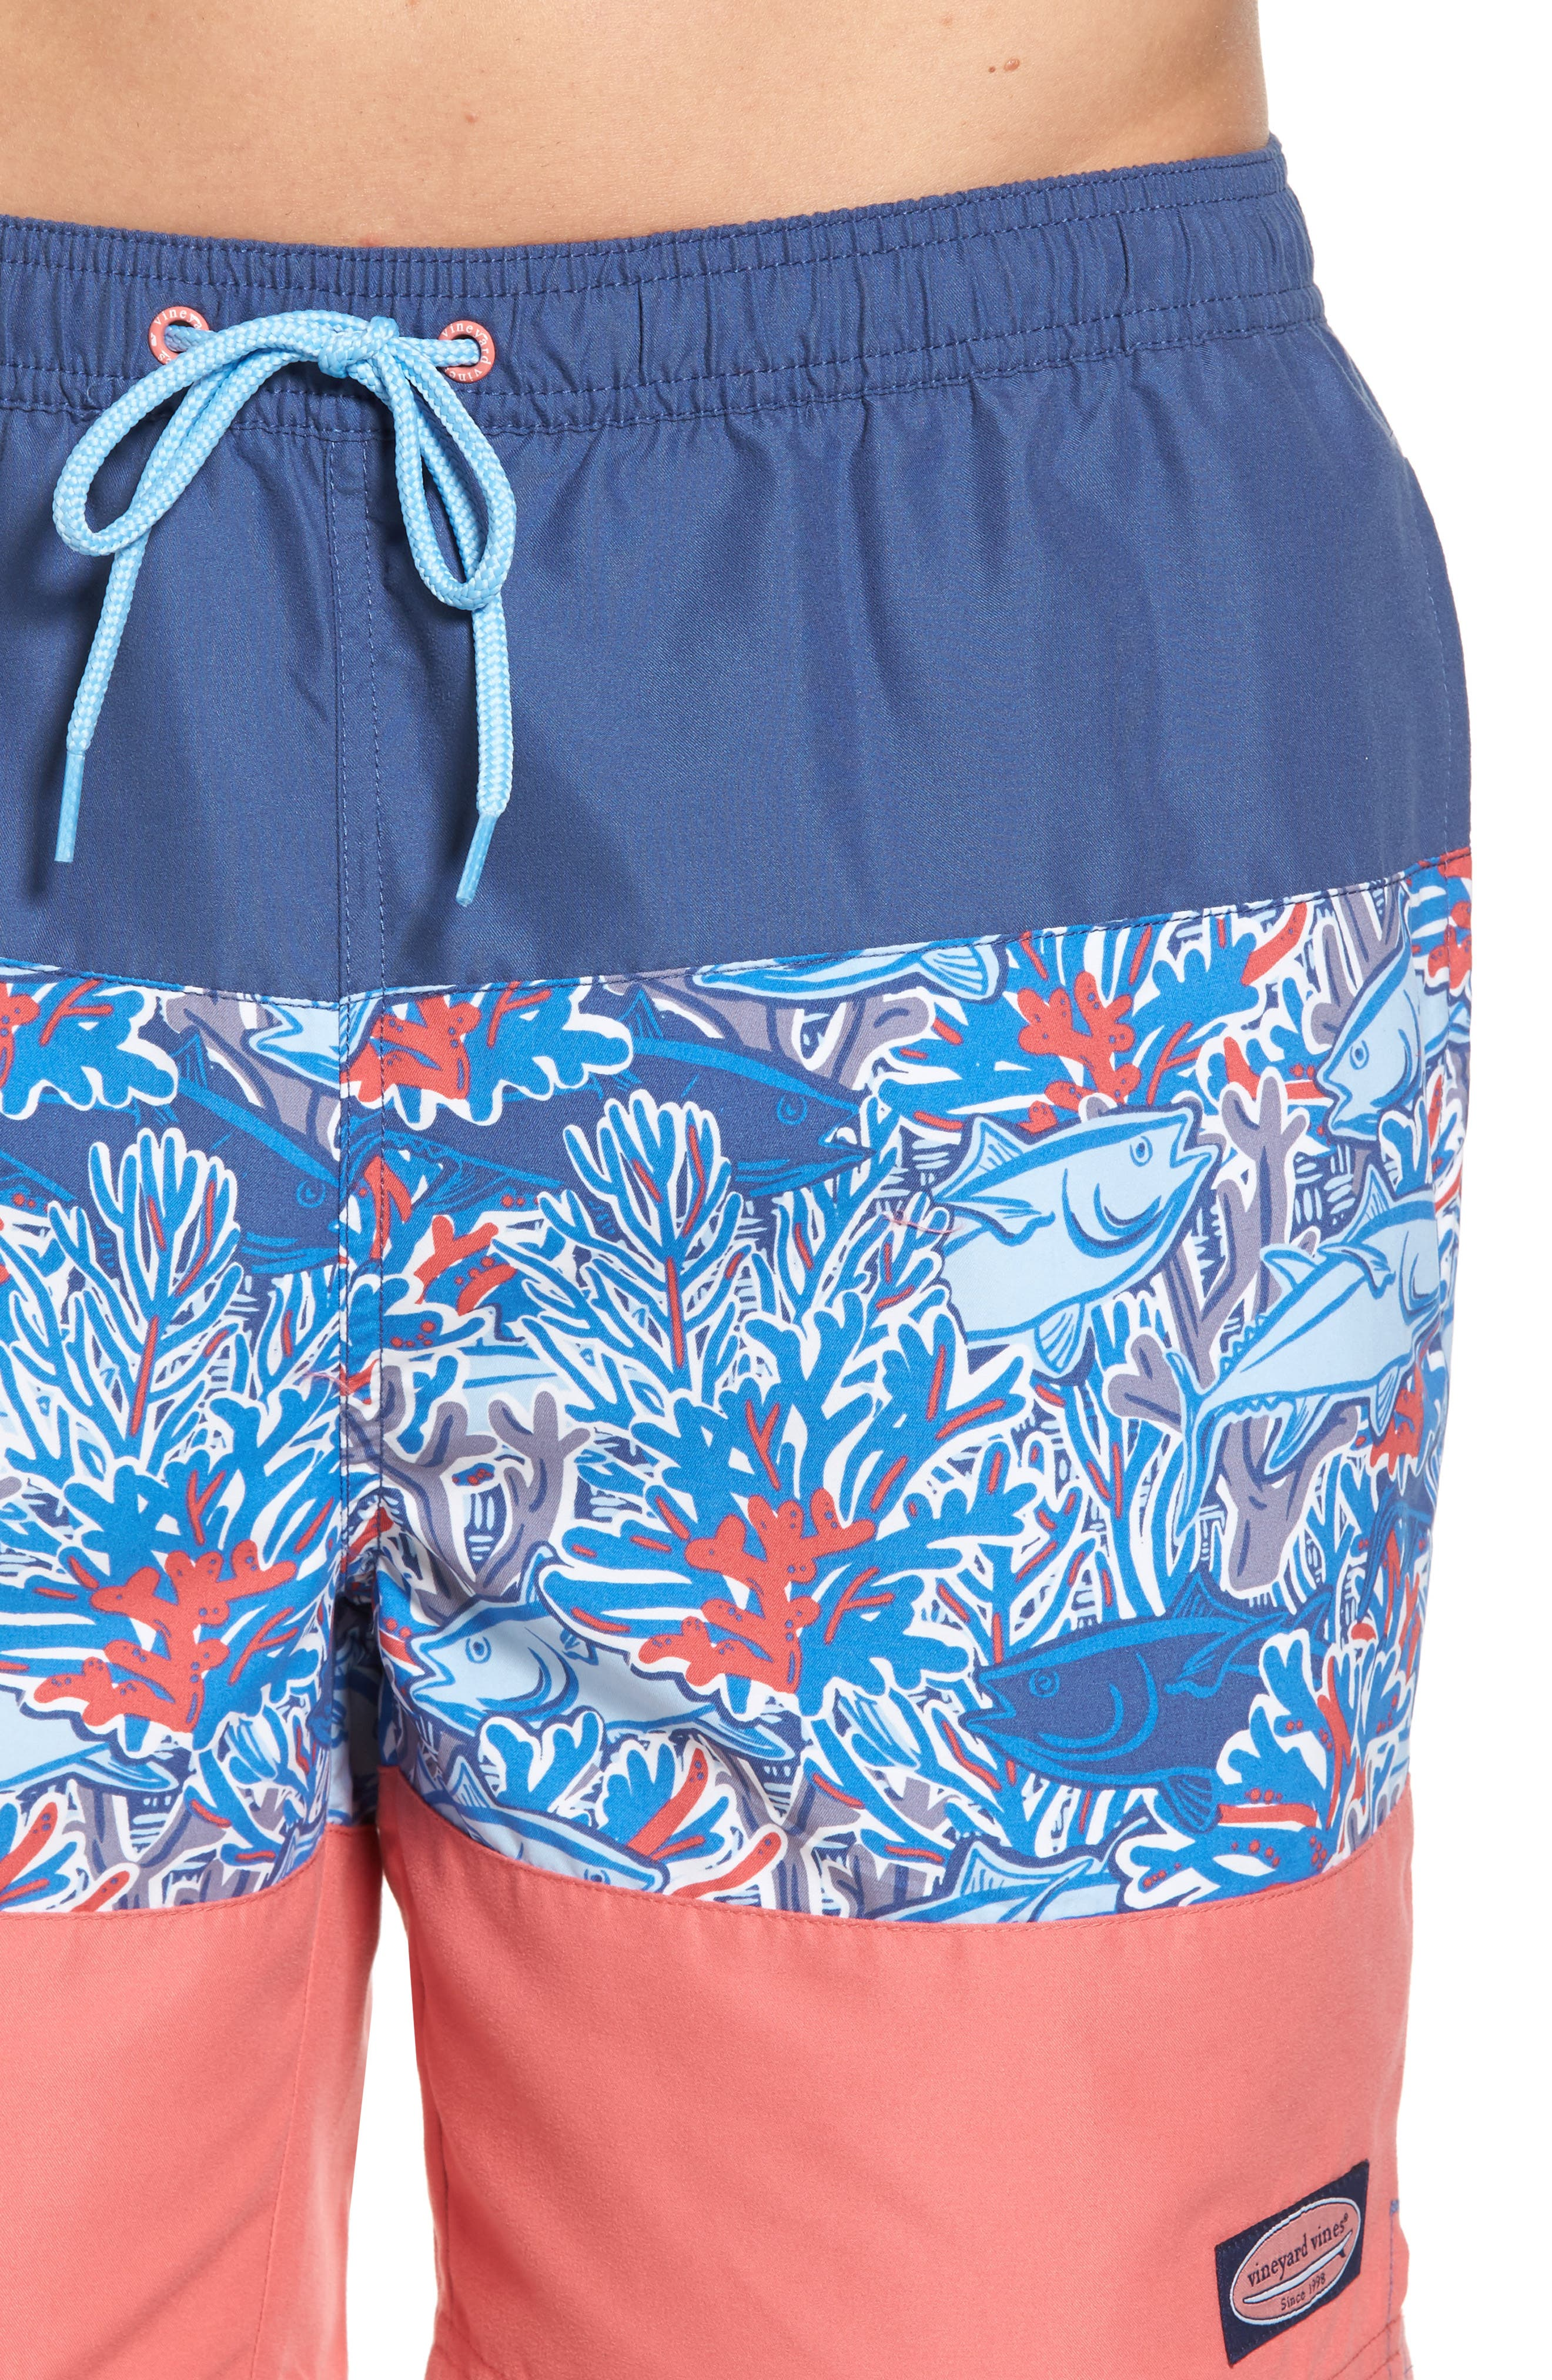 Chappy - Tuna in Coral Pieced Print Swim Trunks,                             Alternate thumbnail 4, color,